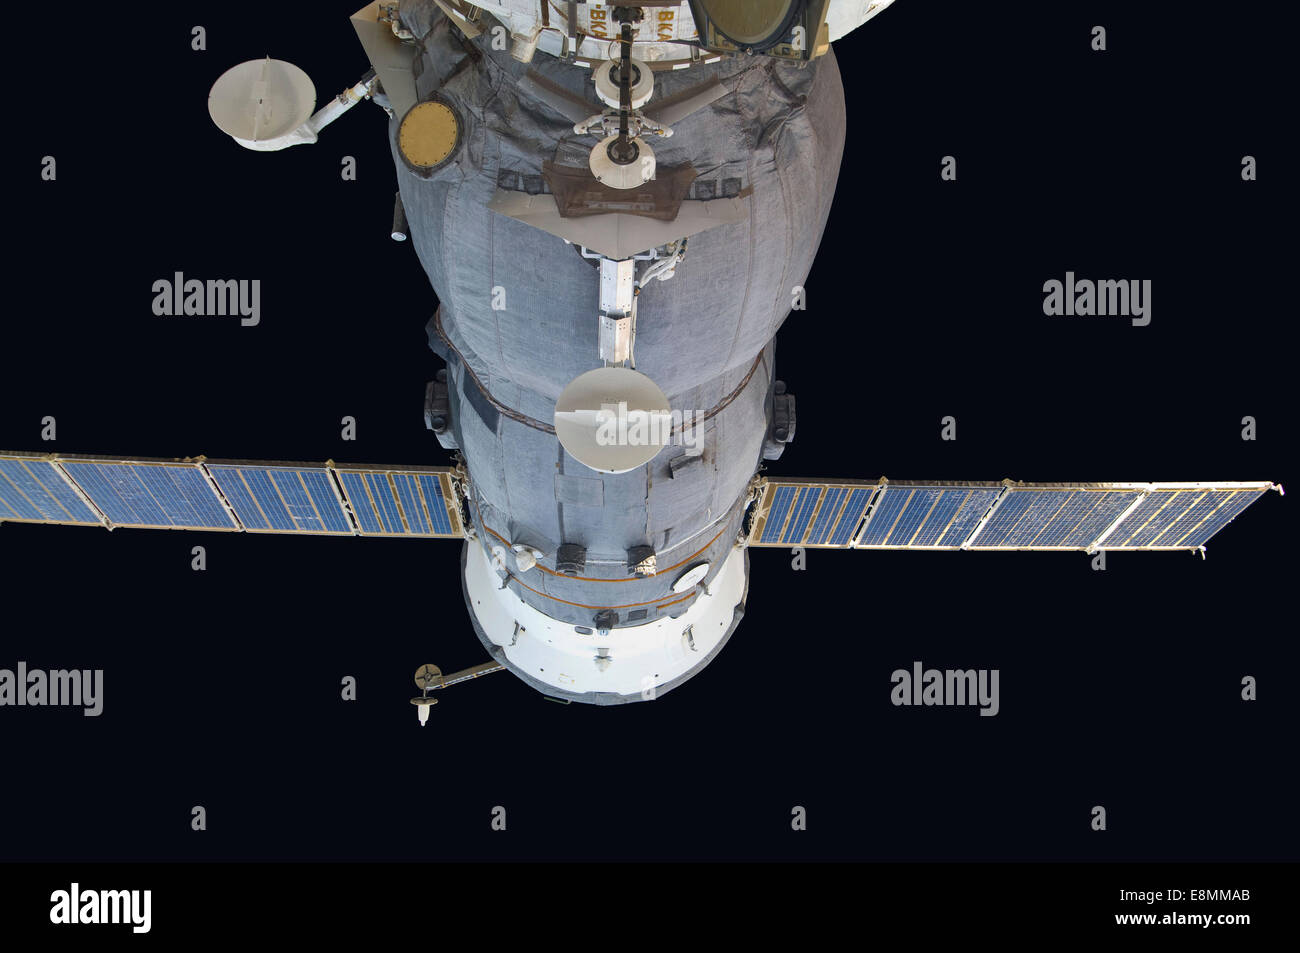 September 16, 2011 - A docked Russian Soyuz spacecraft backdropped by the blackness of space. - Stock Image